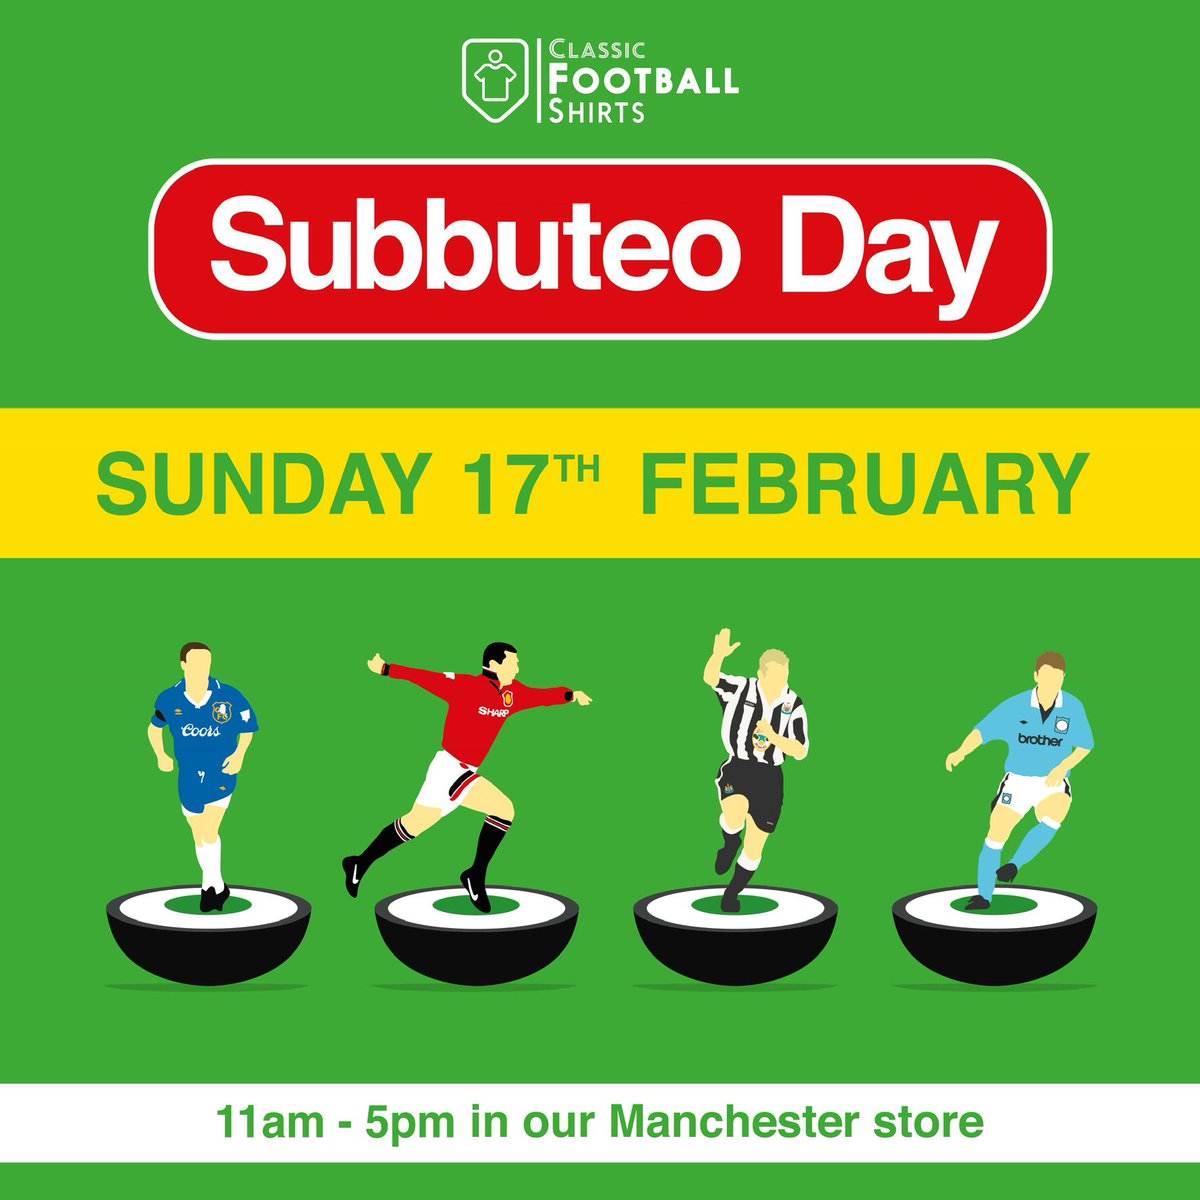 You can now play Subbuteo surrounded by thousands of retro football kits